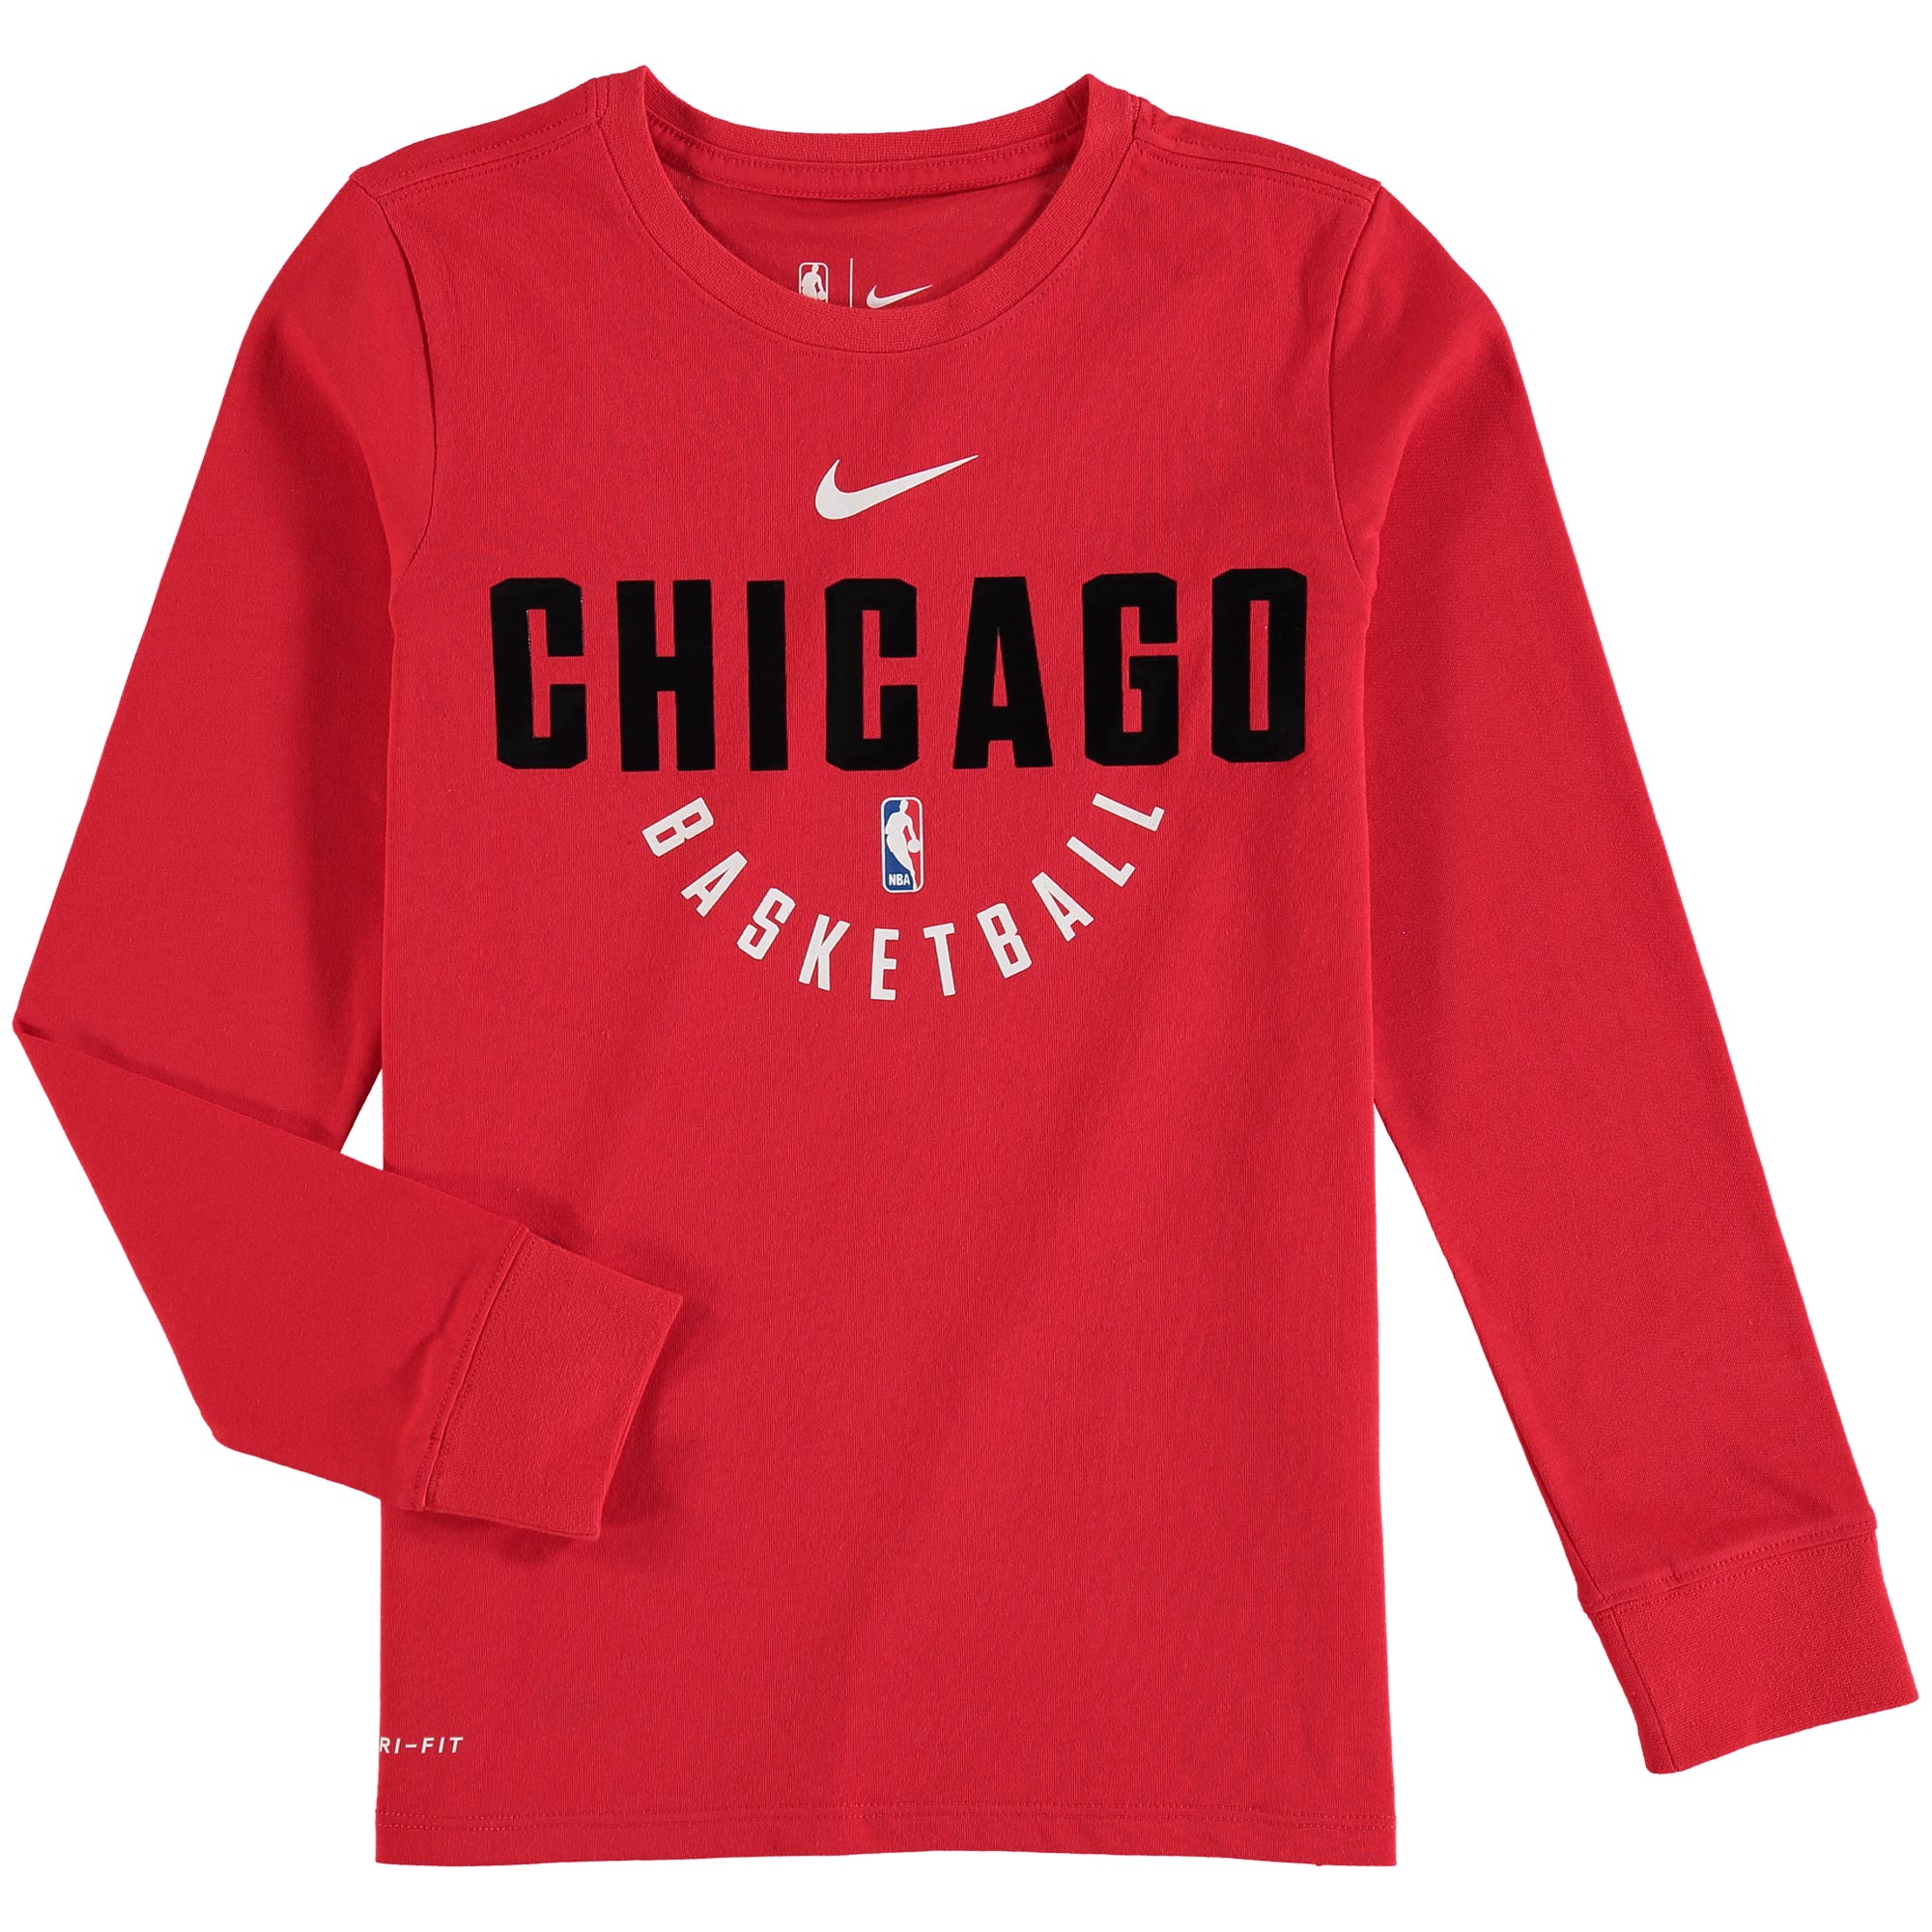 Chicago Bulls Nike Youth Elite Performance Practice Long Sleeve T-Shirt - Red